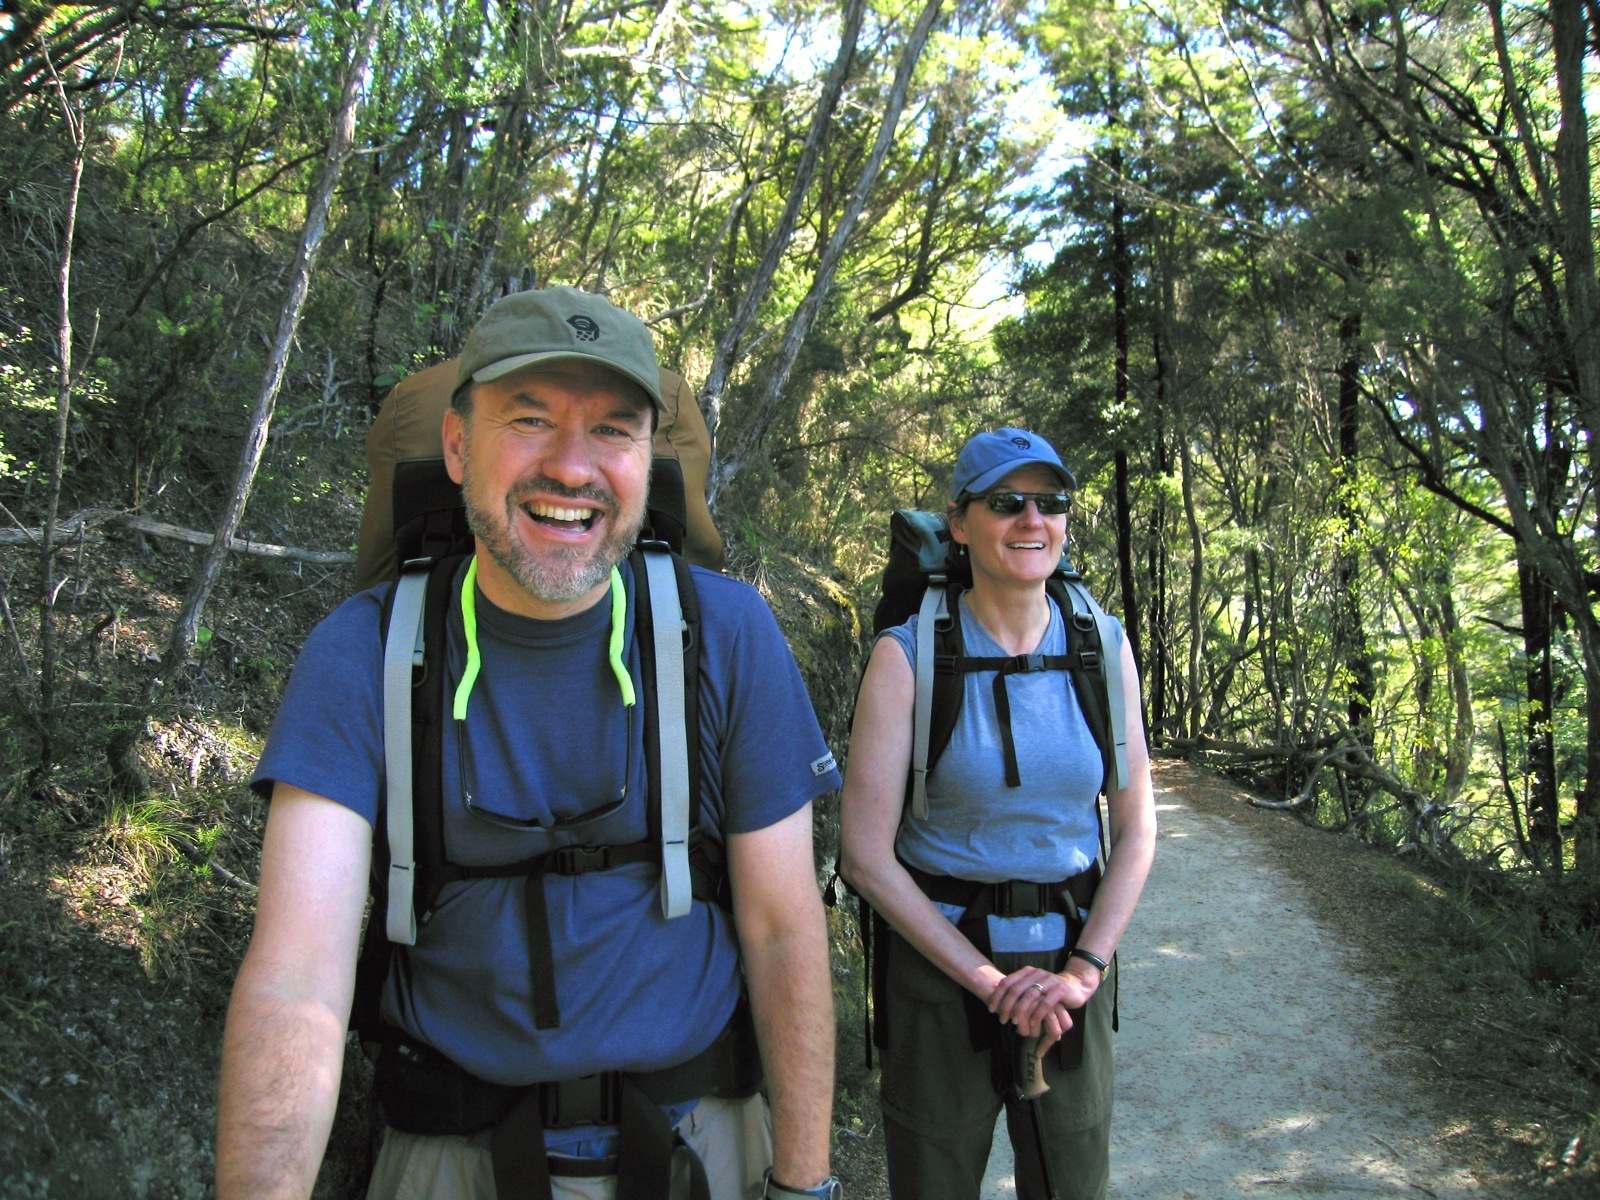 Two participants smile while hiking the Minong Ridge on Isle Royale National Park.